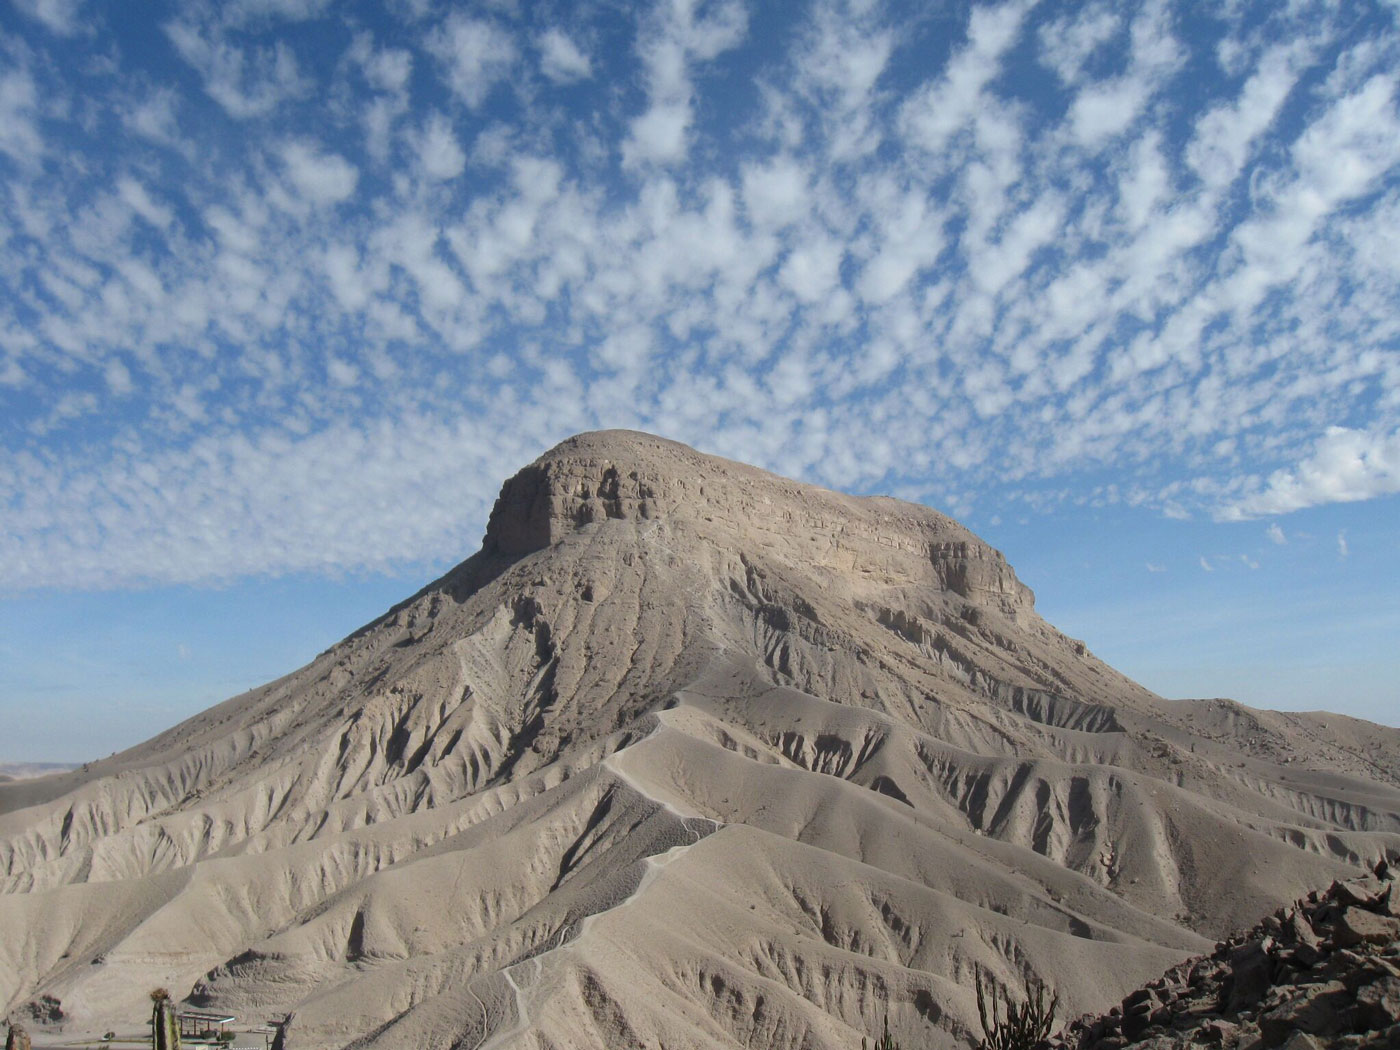 Pictured is the site of Cerro Baúl in the Moquegua Valley of Peru.